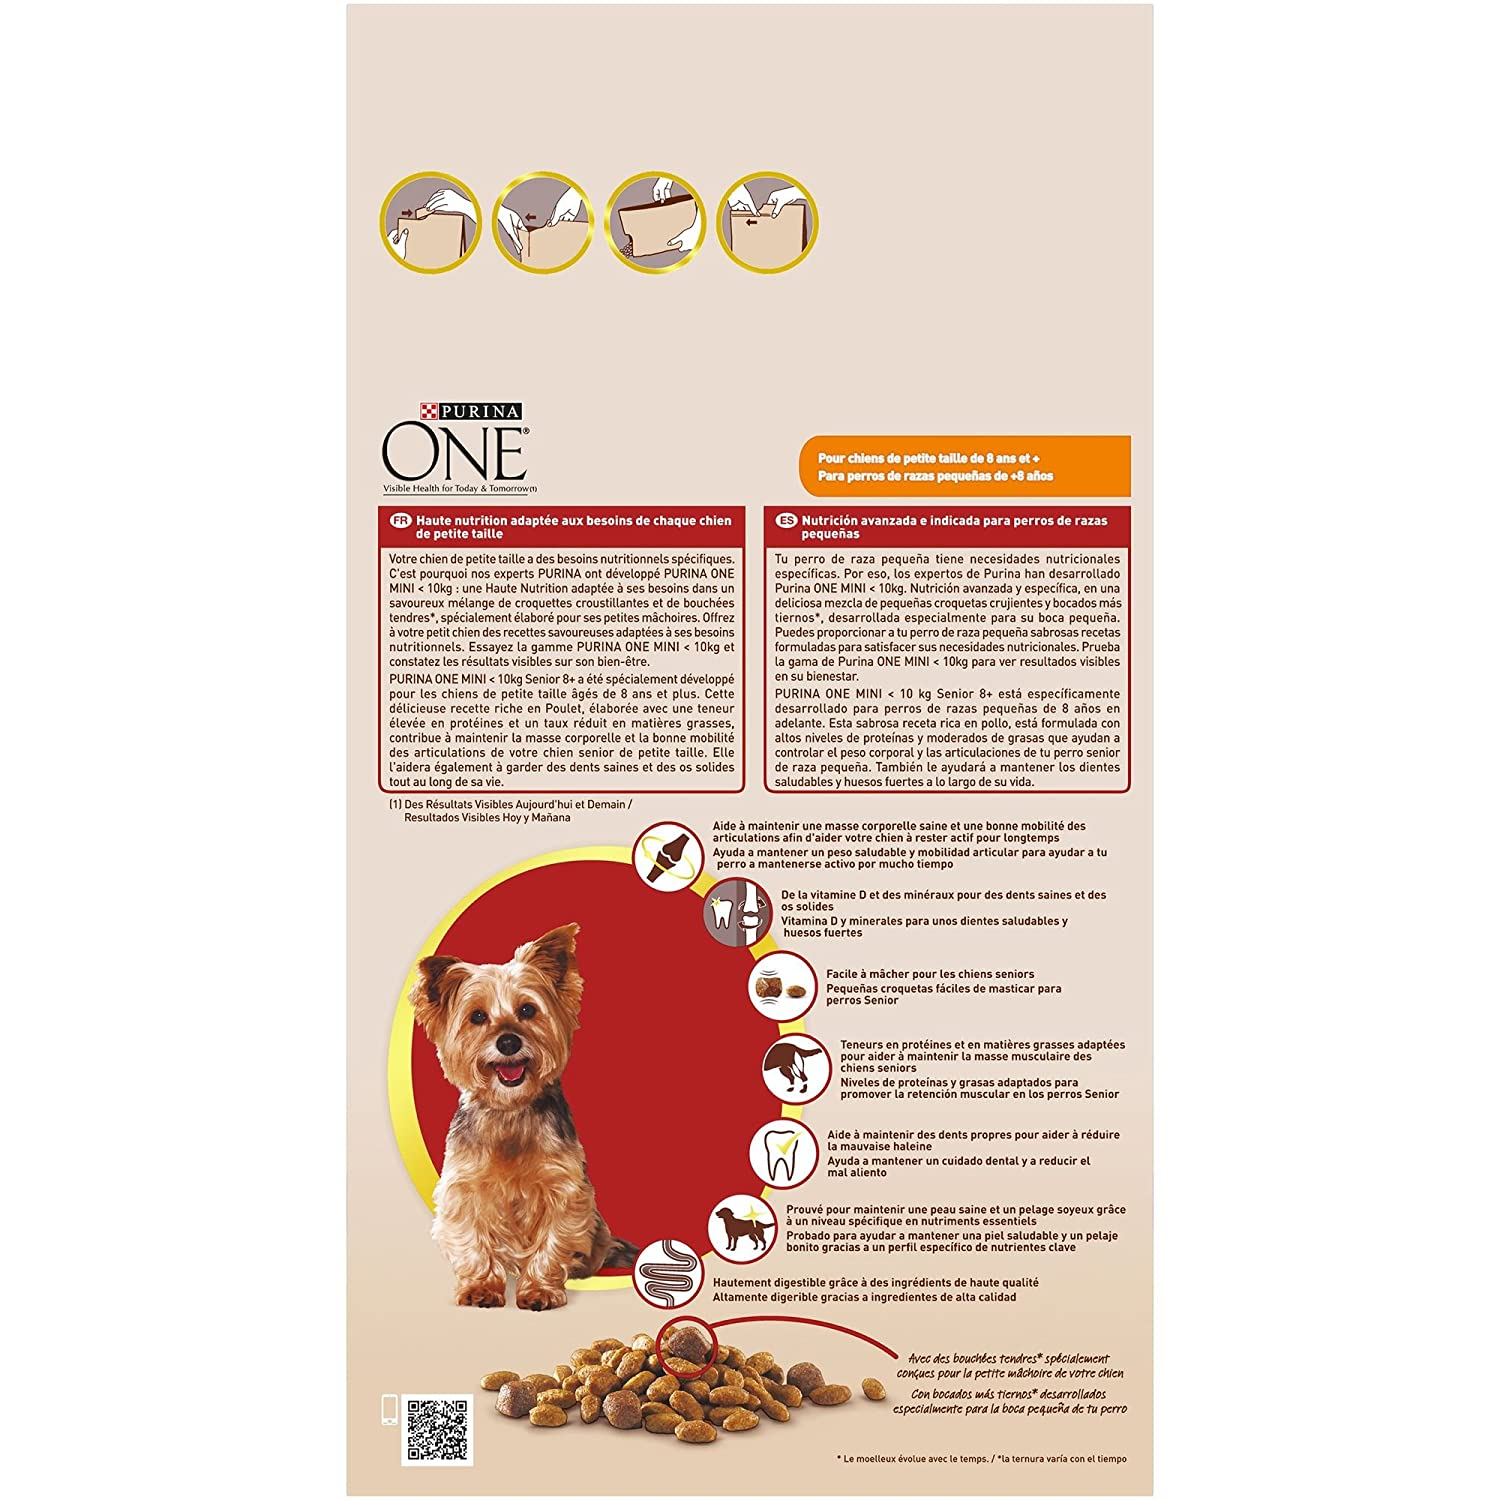 Purina ONE Mini Pienso para Perro Senior Pollo y Arroz - Pack de 8 x 800 g - Total 6400 g: Amazon.es: Productos para mascotas